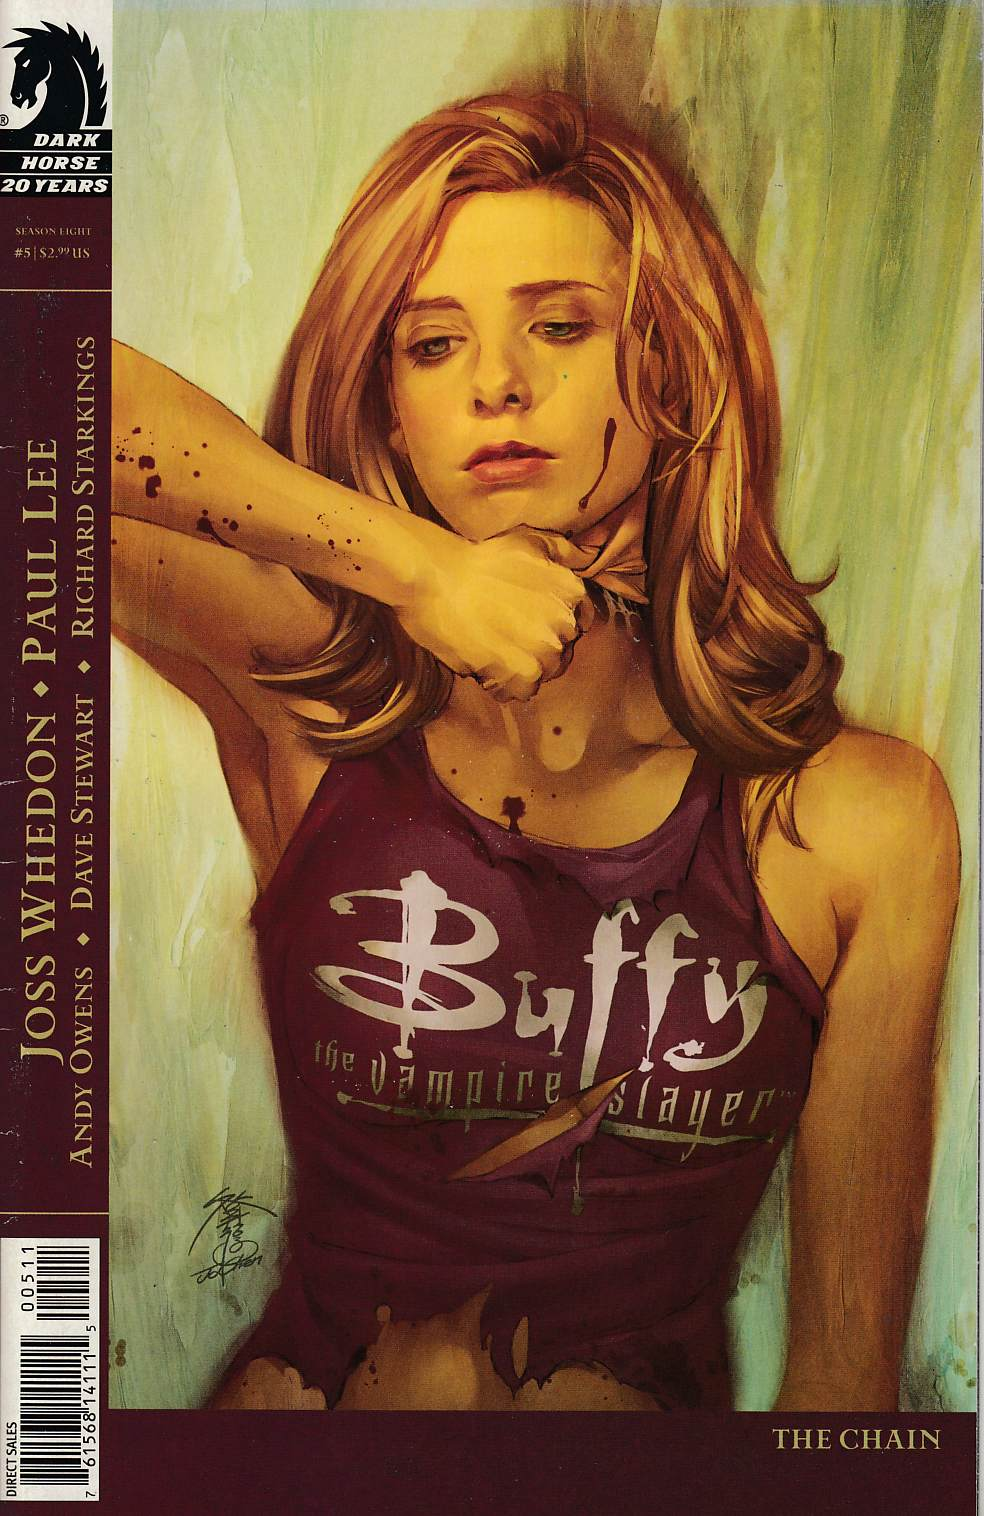 Buffy the Vampire Slayer Season 8 #5 Cover A Fine (6.0) [Dark Horse Comic] THUMBNAIL